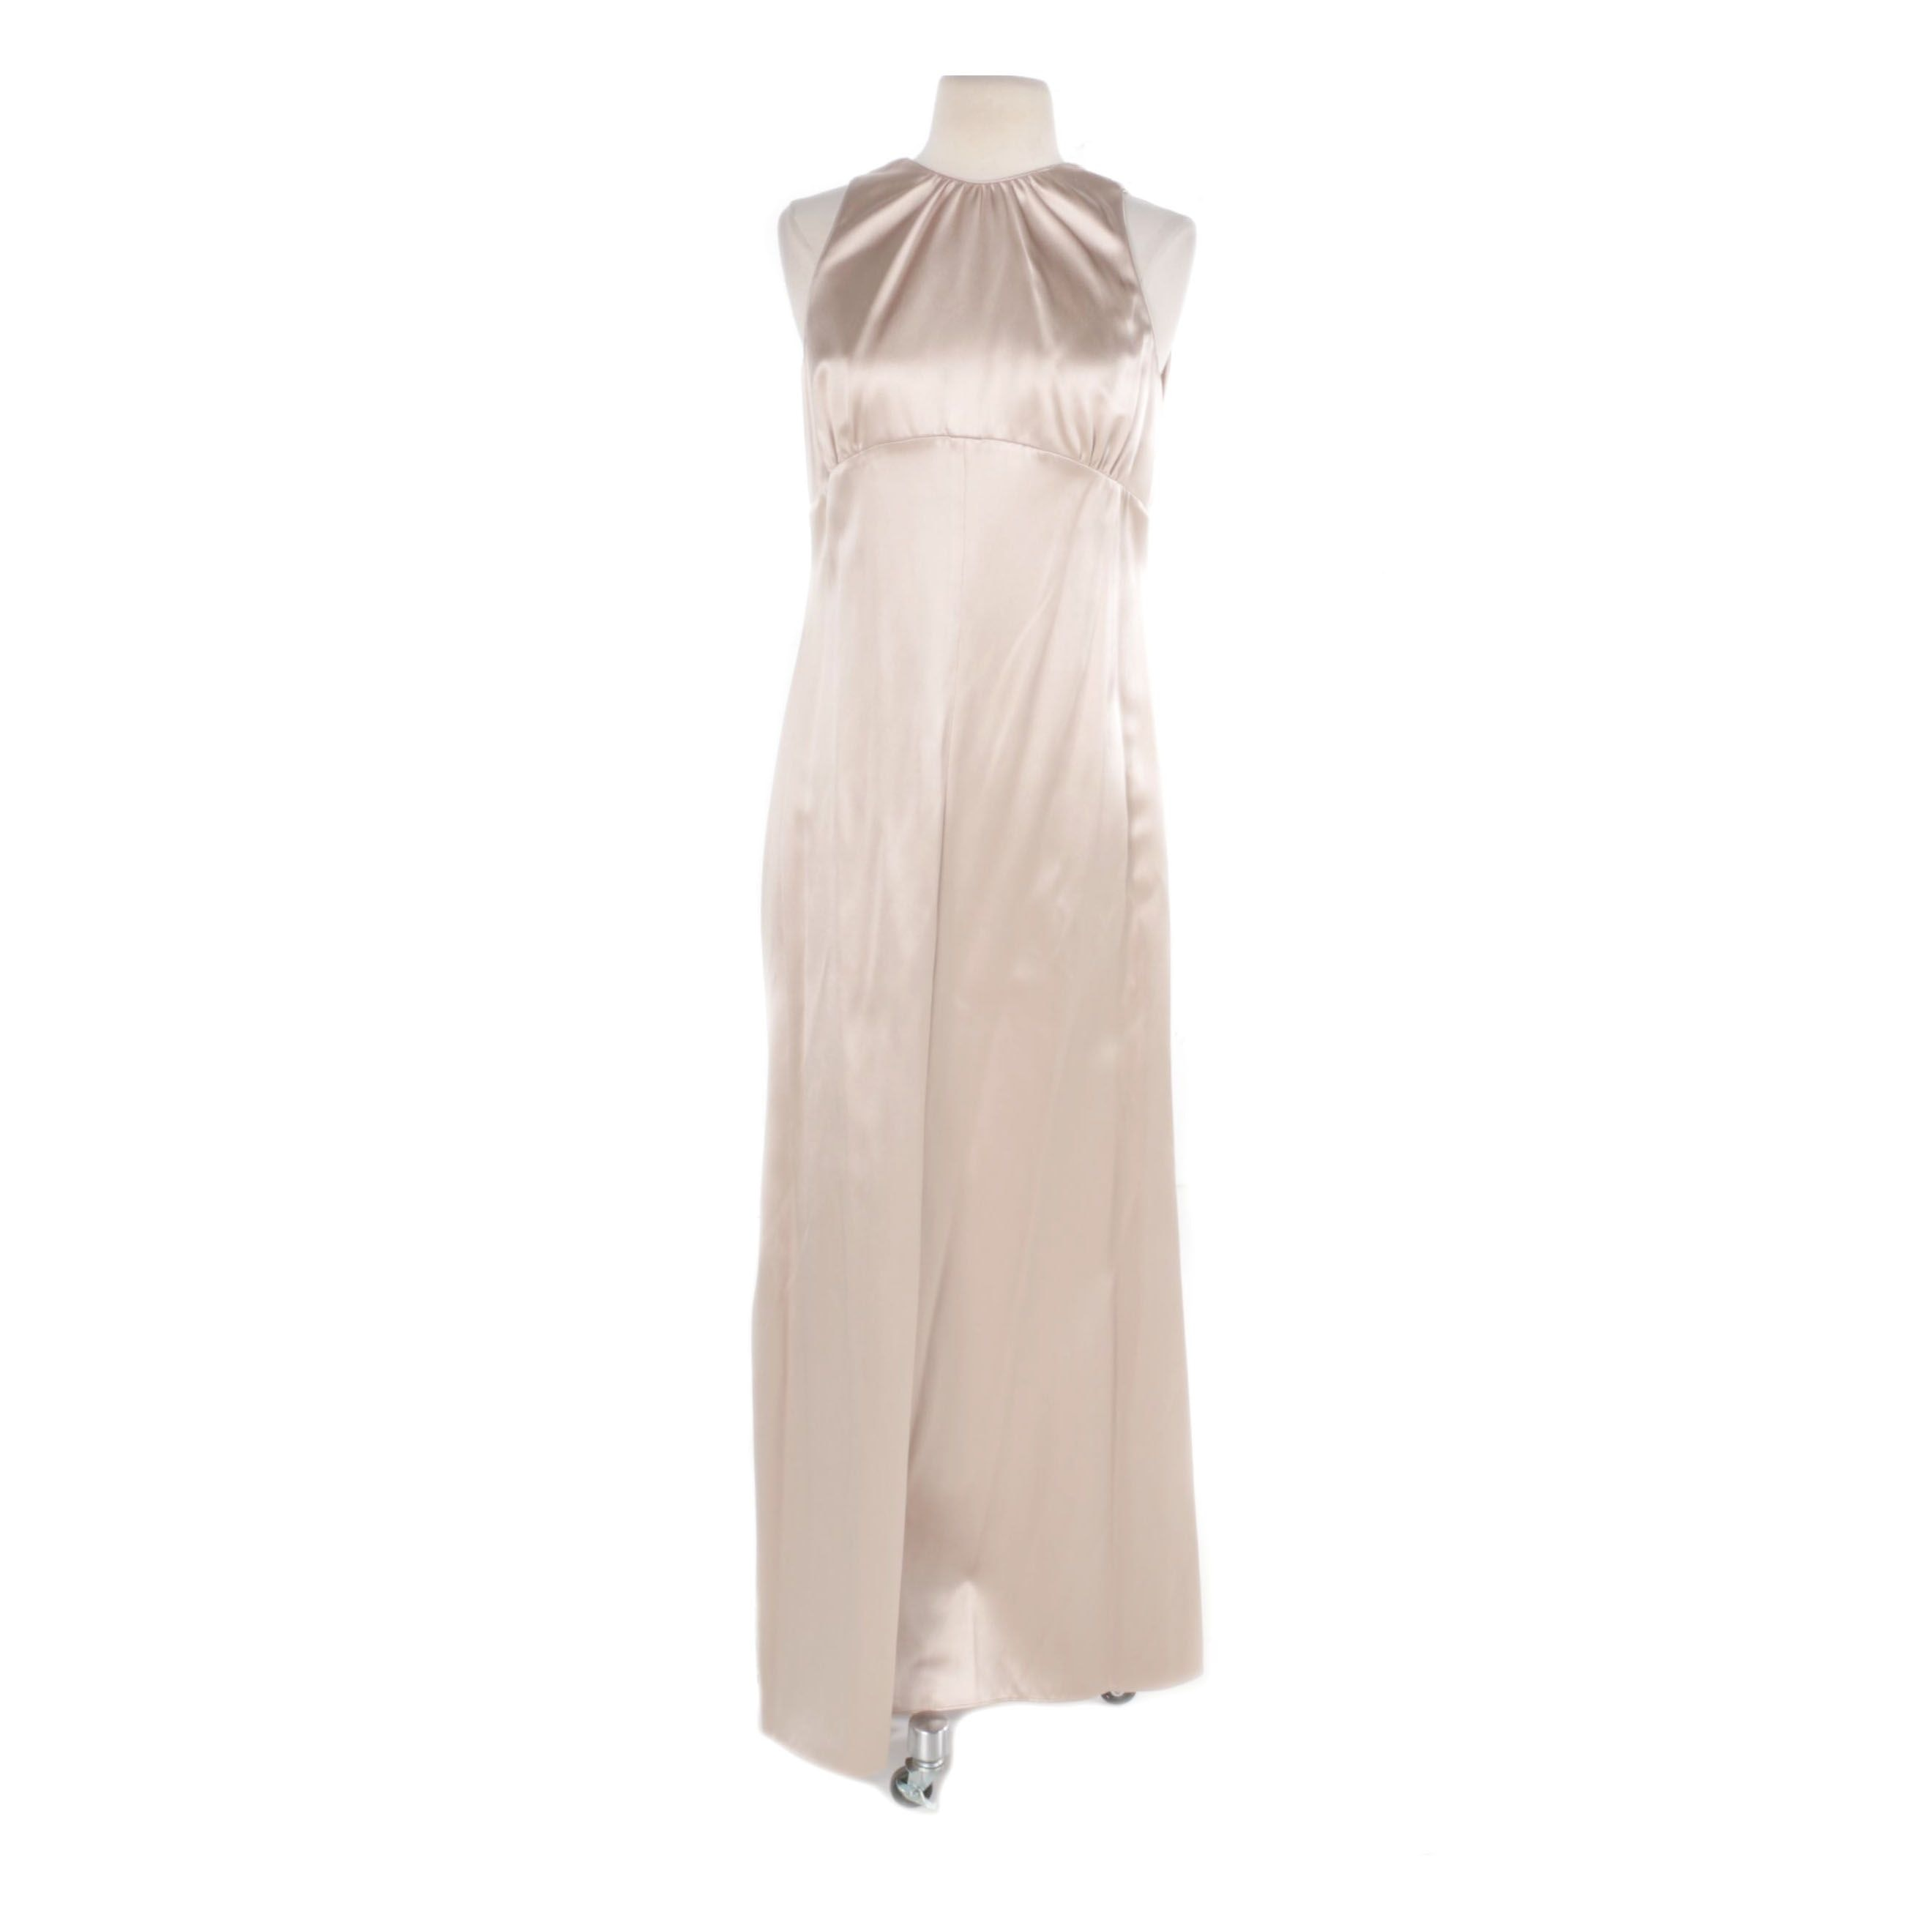 Giorgio Armani Champagne Silk Sleeveless Dress